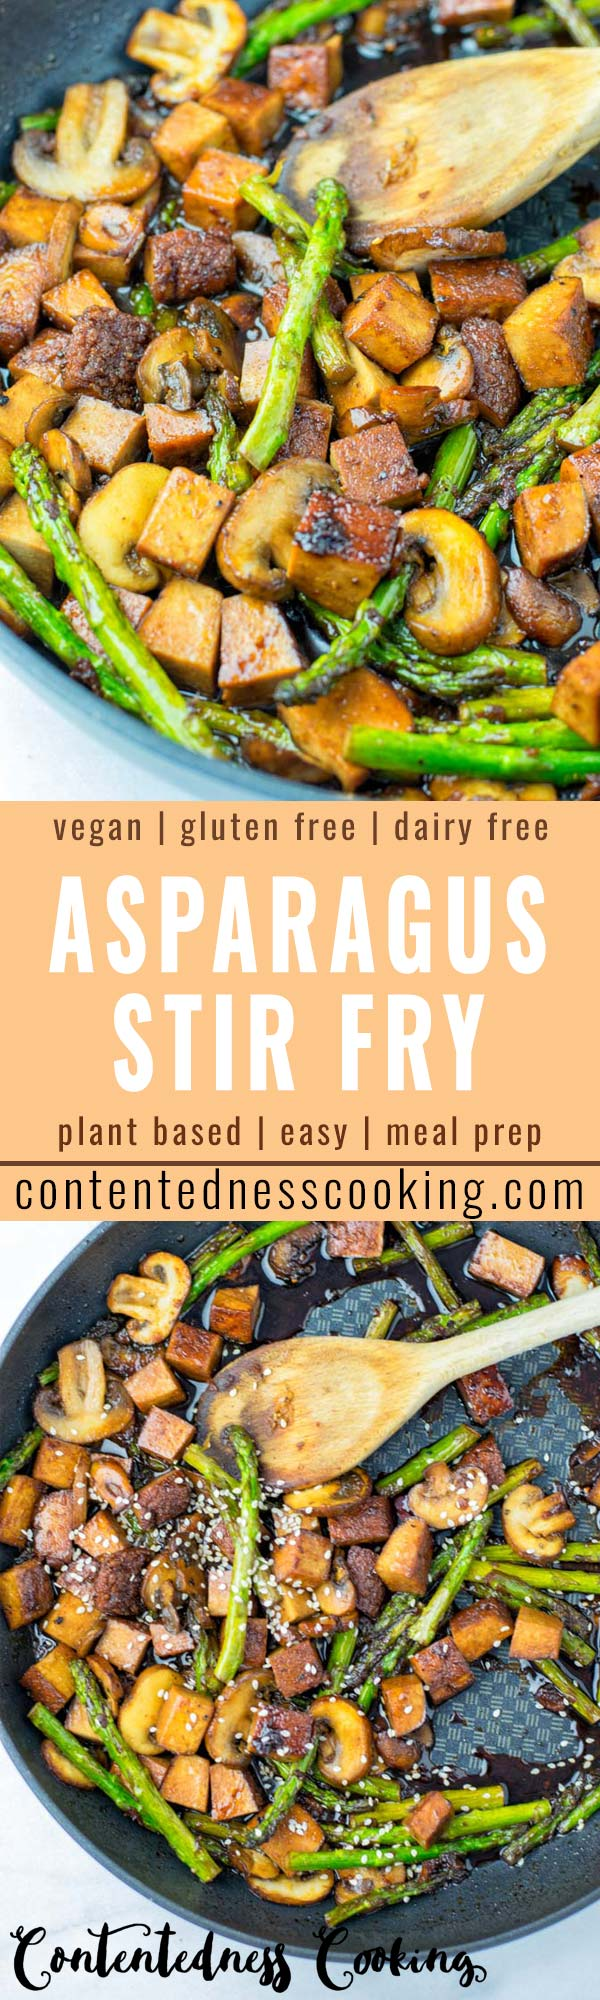 This vegan Asparagus Stir Fry is super easy. Looking to cook more veggies for your families? This healthy lunch or dinner is made with tofu, a soy sauce, and extra mushrooms. Ideal for meal prep, it reheats perfectly as work lunch.